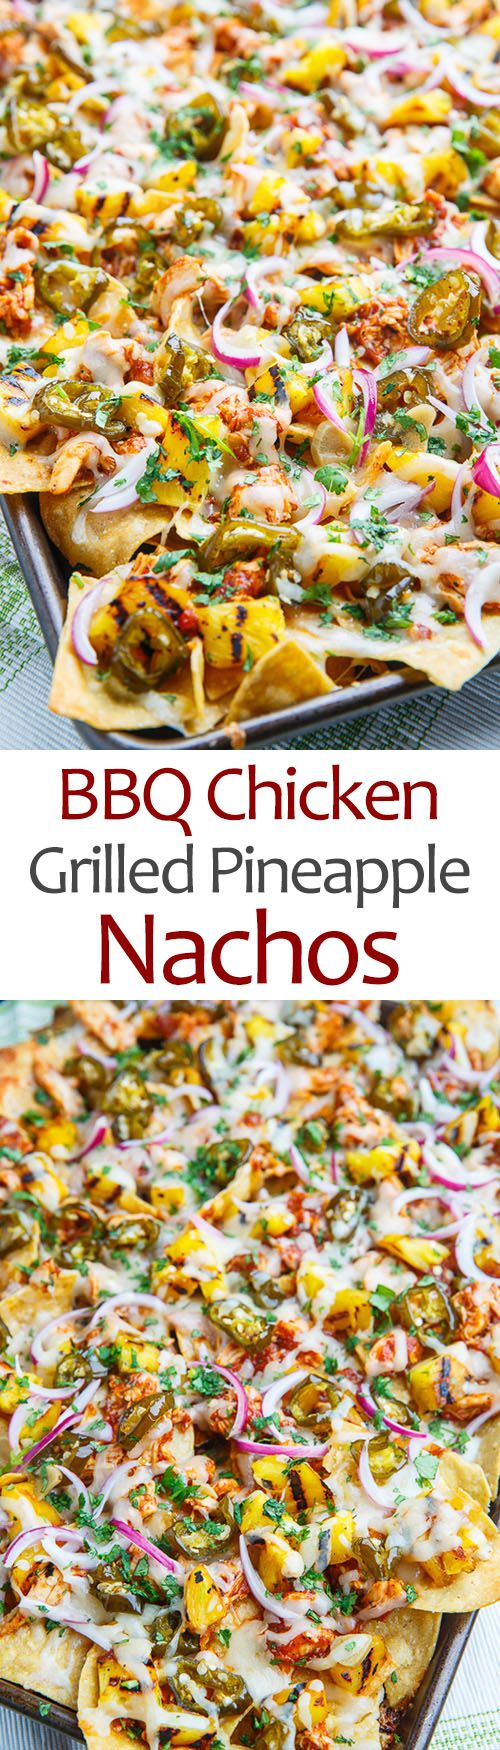 BBQ Chicken and Grilled Pineapple Nachos                                                                                                                                                                                 More